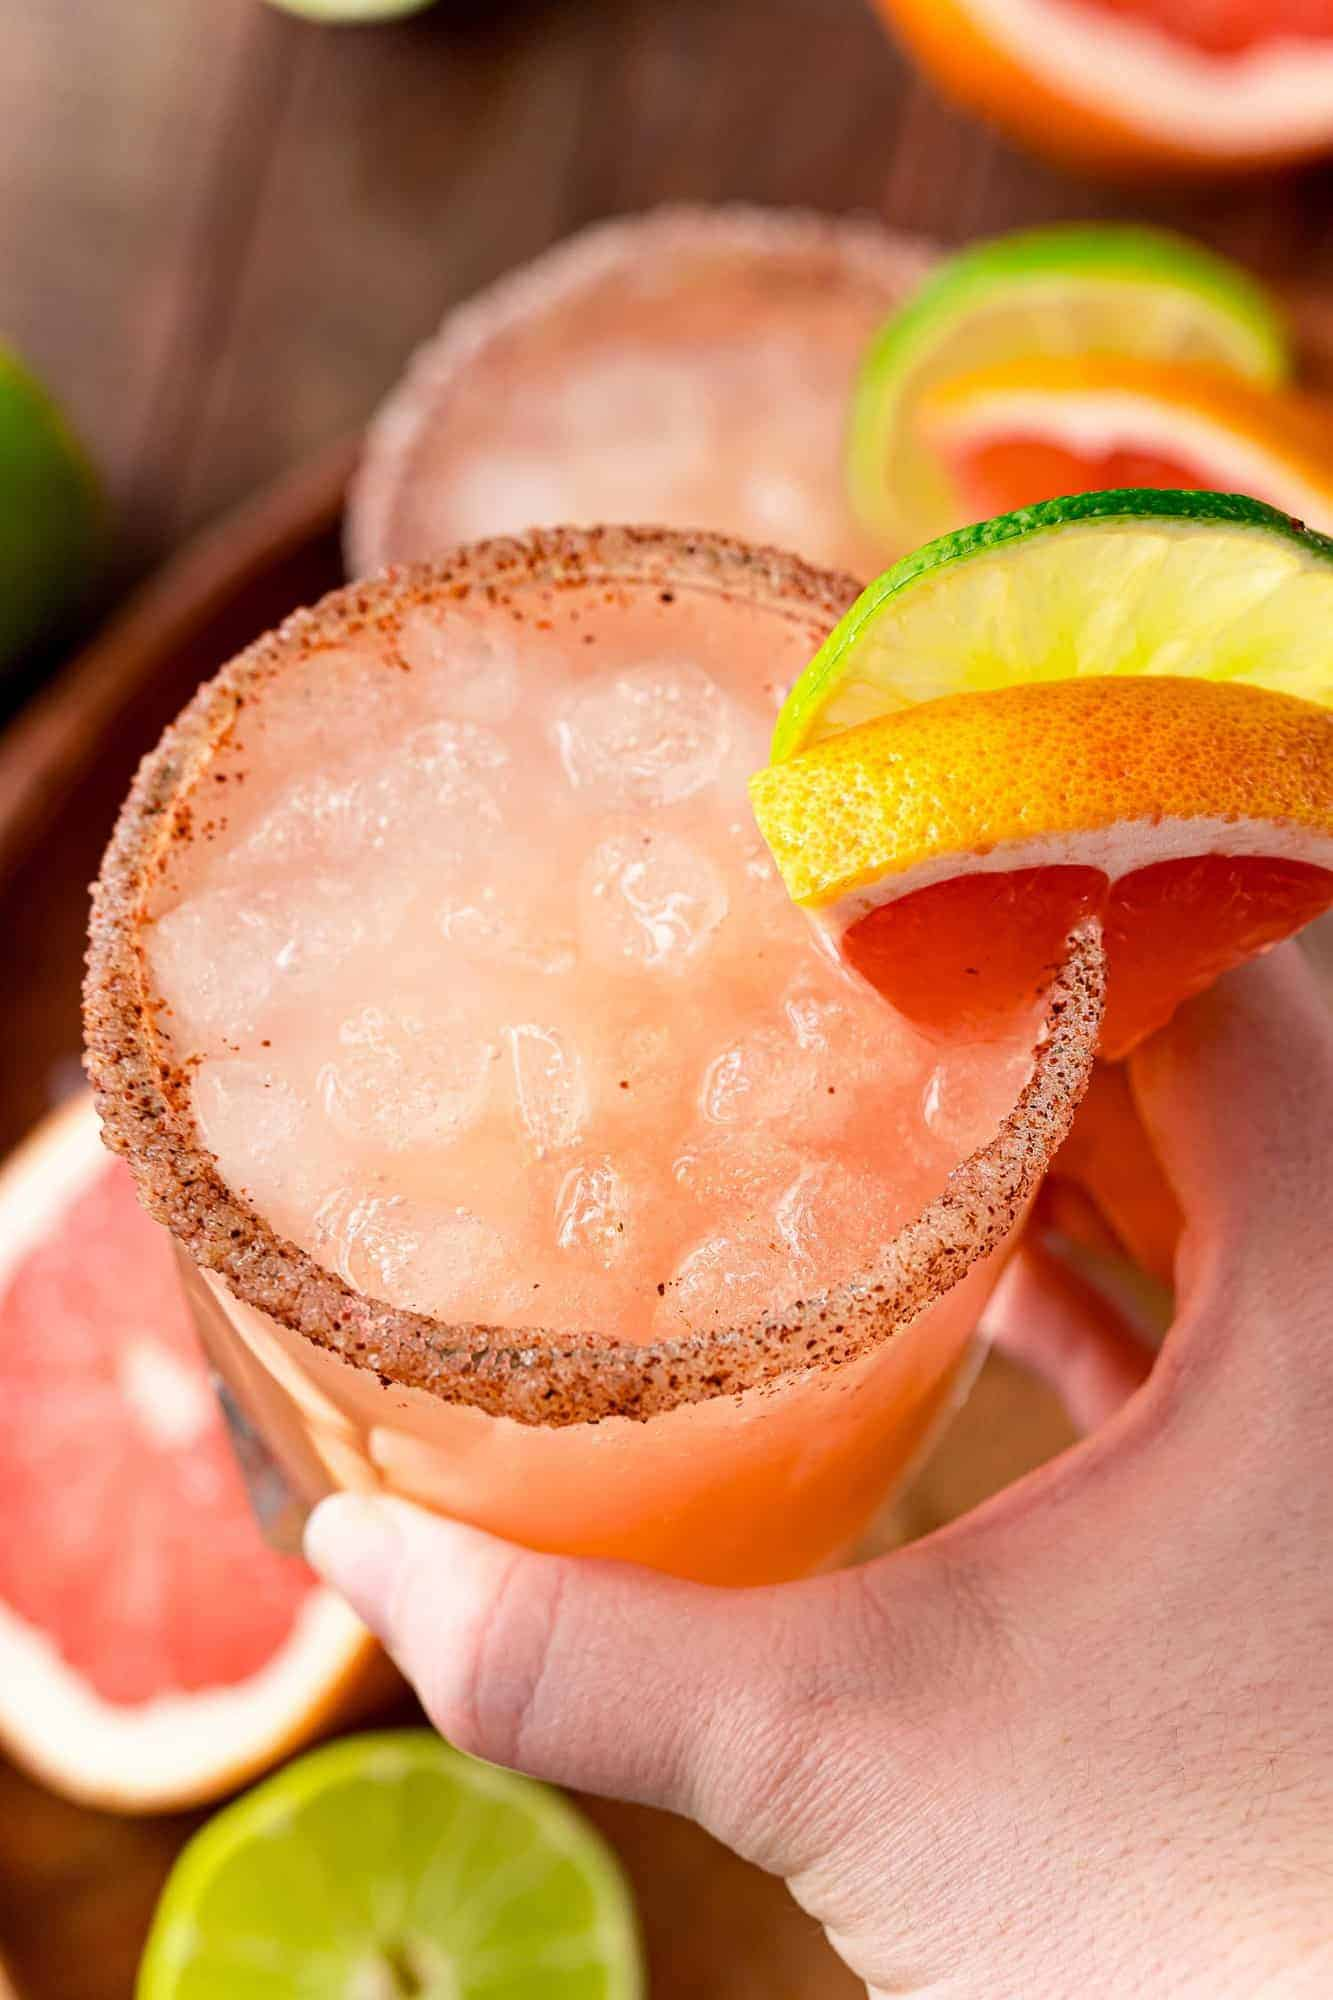 Grapefruit cocktail on ice, being held in a hand.